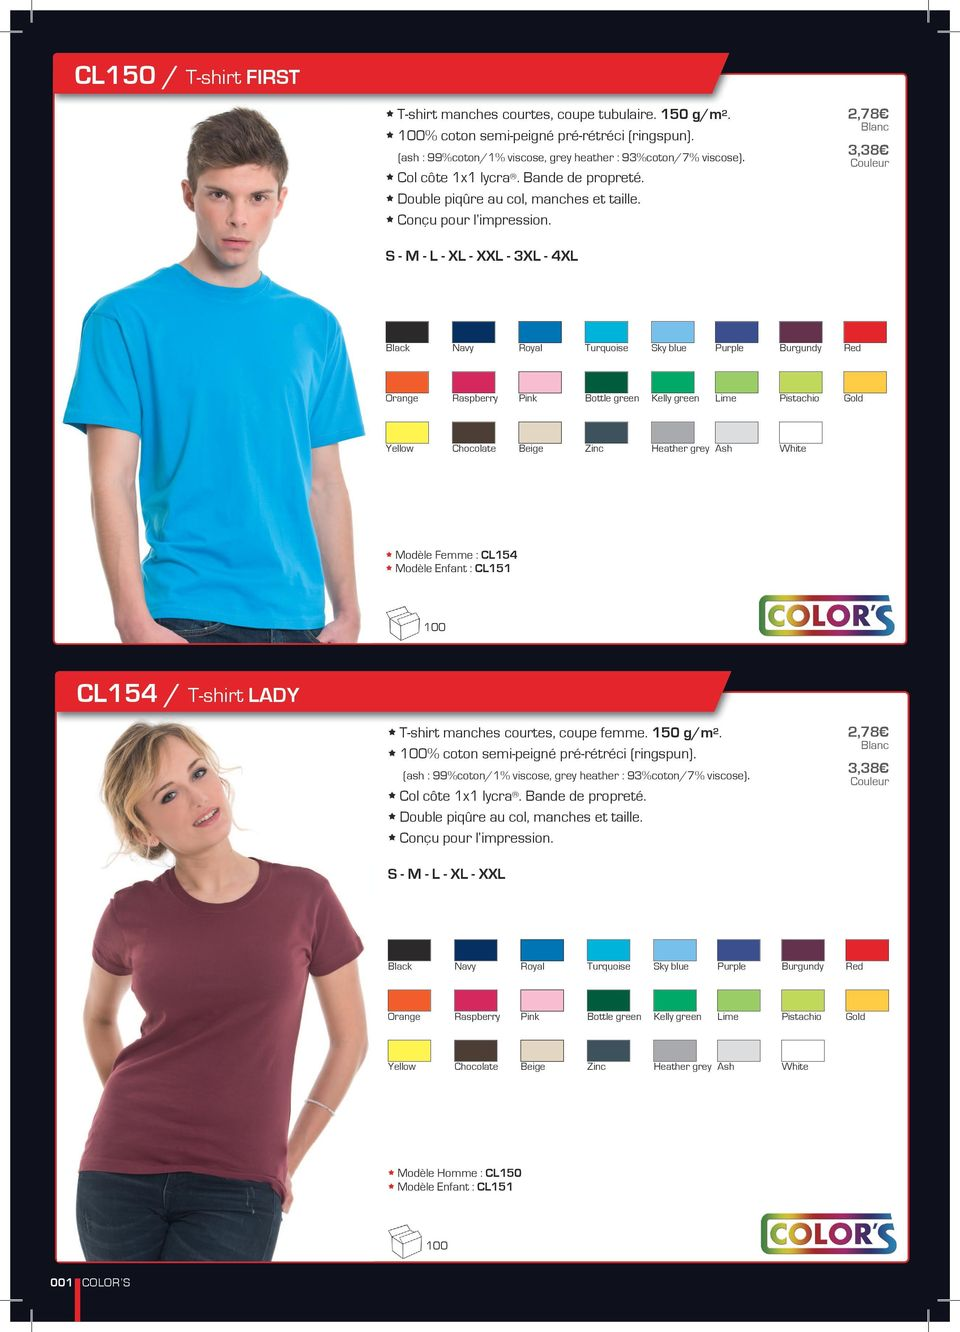 2,78 3,38 S - XL - XXL - 3XL - 4XL Black Navy Royal Turquoise Sky blue Purple Burgundy Red Orange Raspberry Pink Bottle green Kelly green Lime Pistachio Gold Yellow Chocolate Beige Zinc Heather grey